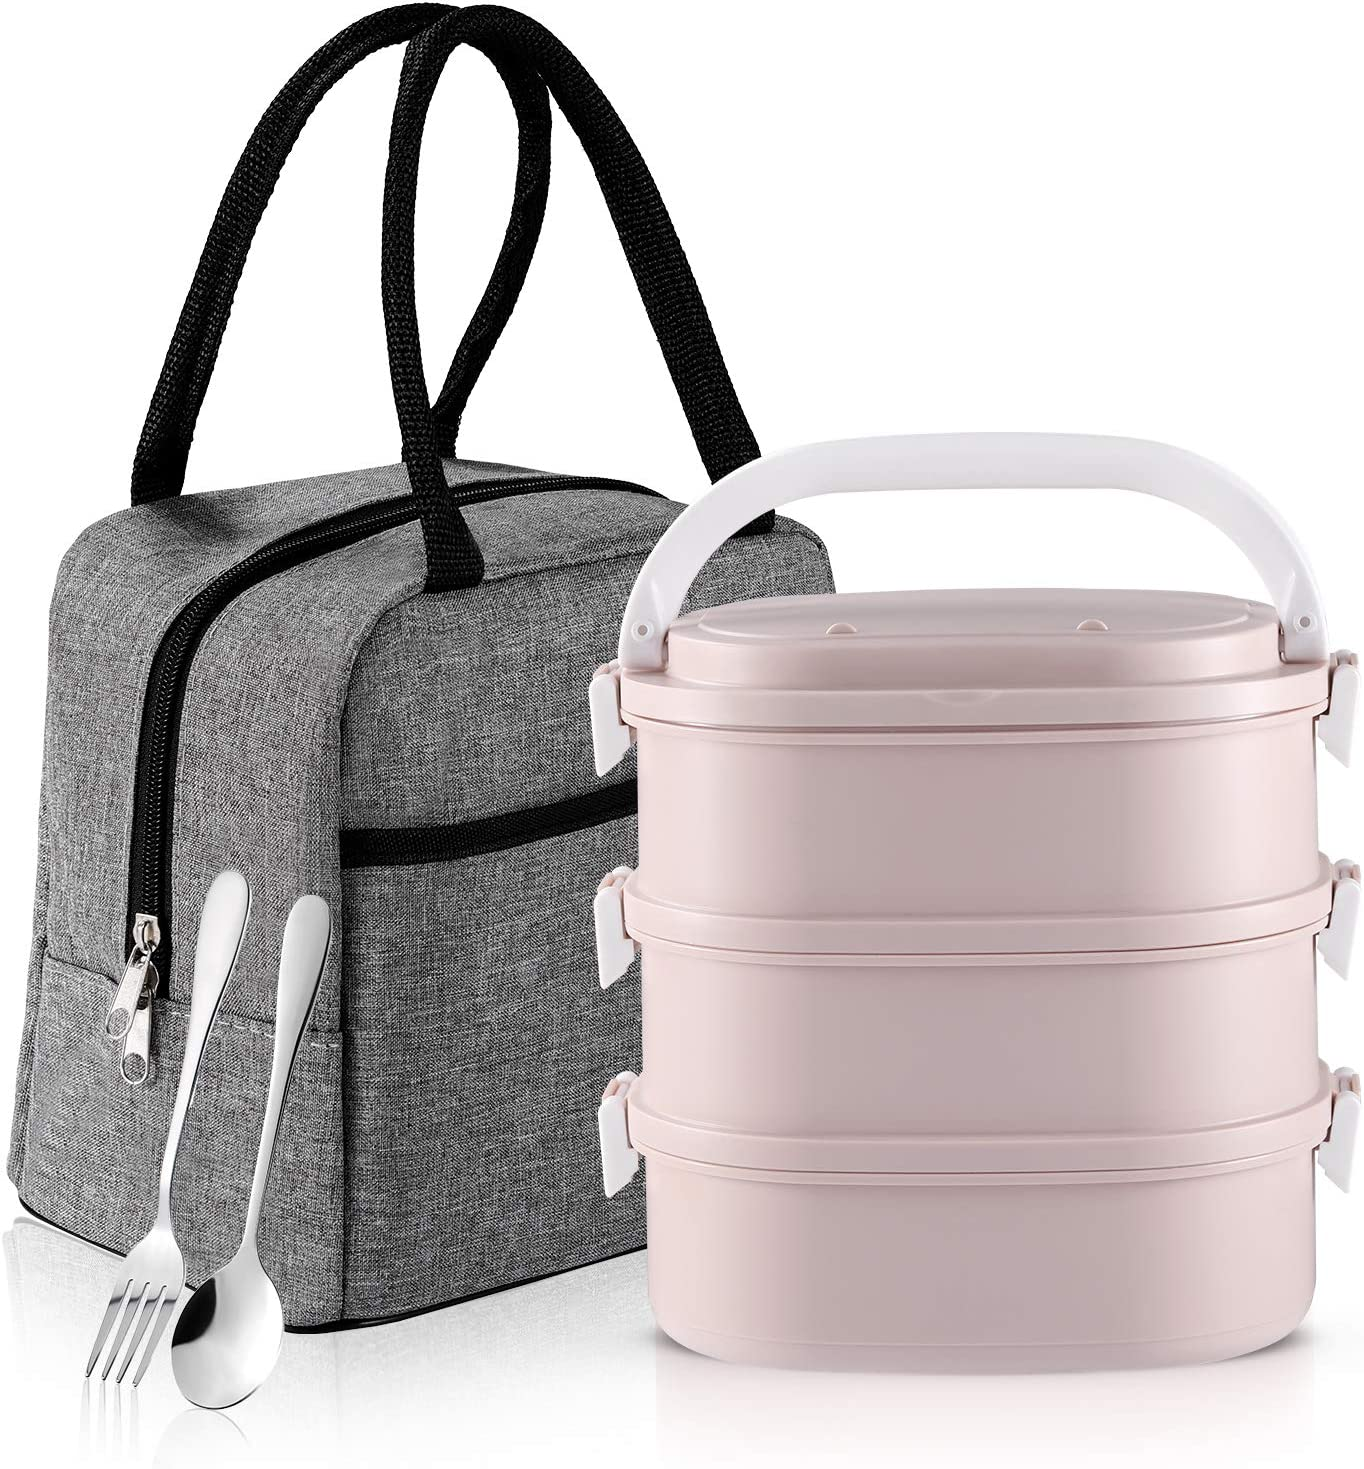 Bento Box, Slaipo 3-In-1 Lunch Box with Insulated Lunch Bag Fork Spoon, Built-in Stainless Steel Container, and Sealing Lids, Stackable Leak-proof Lunch kit for Adult Student Kids (3 Tiers, Pink)